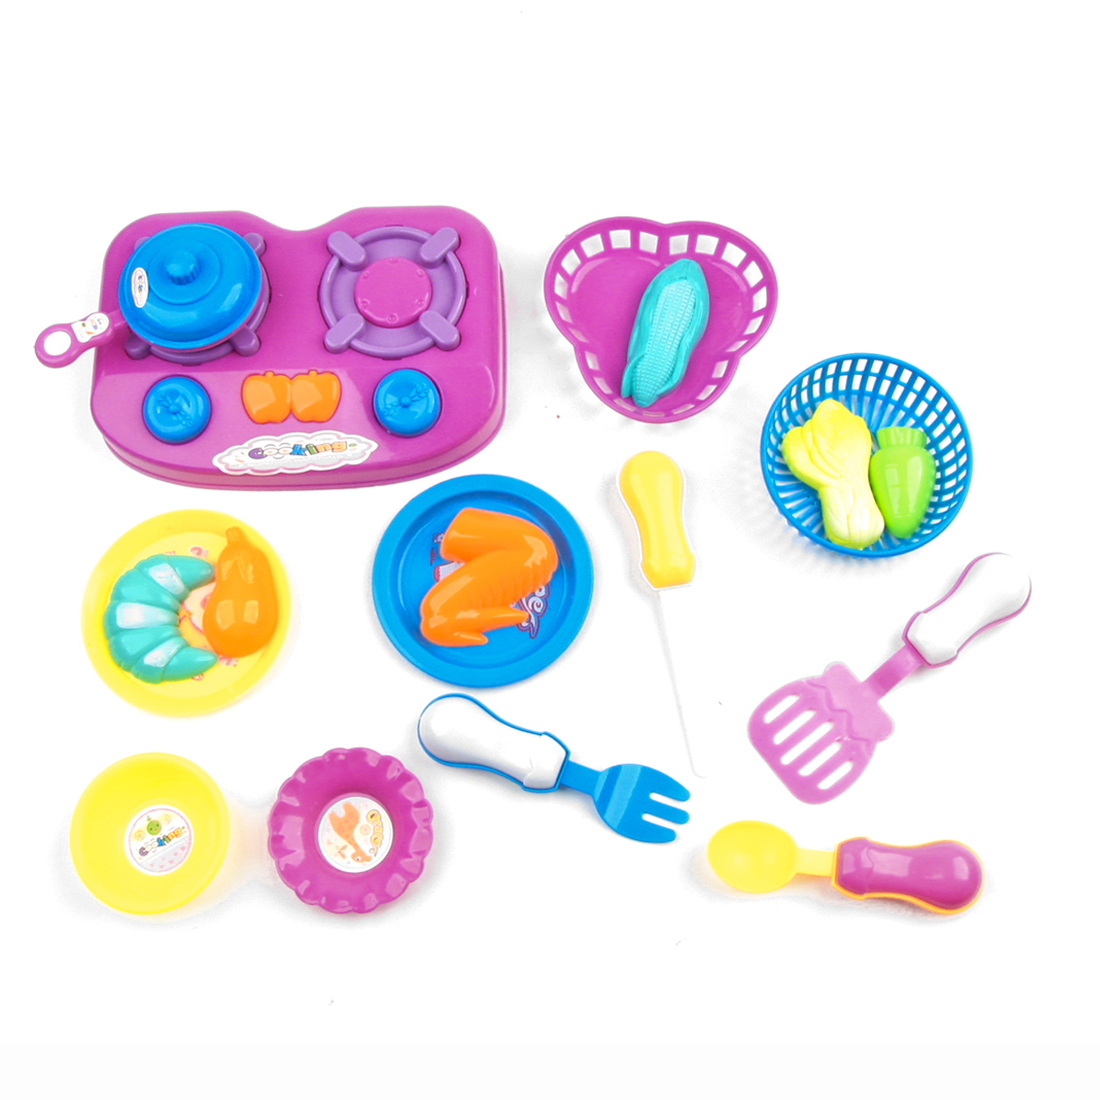 Kid 18 in 1 Assorted Color Plastic Gas Cooker Spoon Fork Pretend Play Toy kit